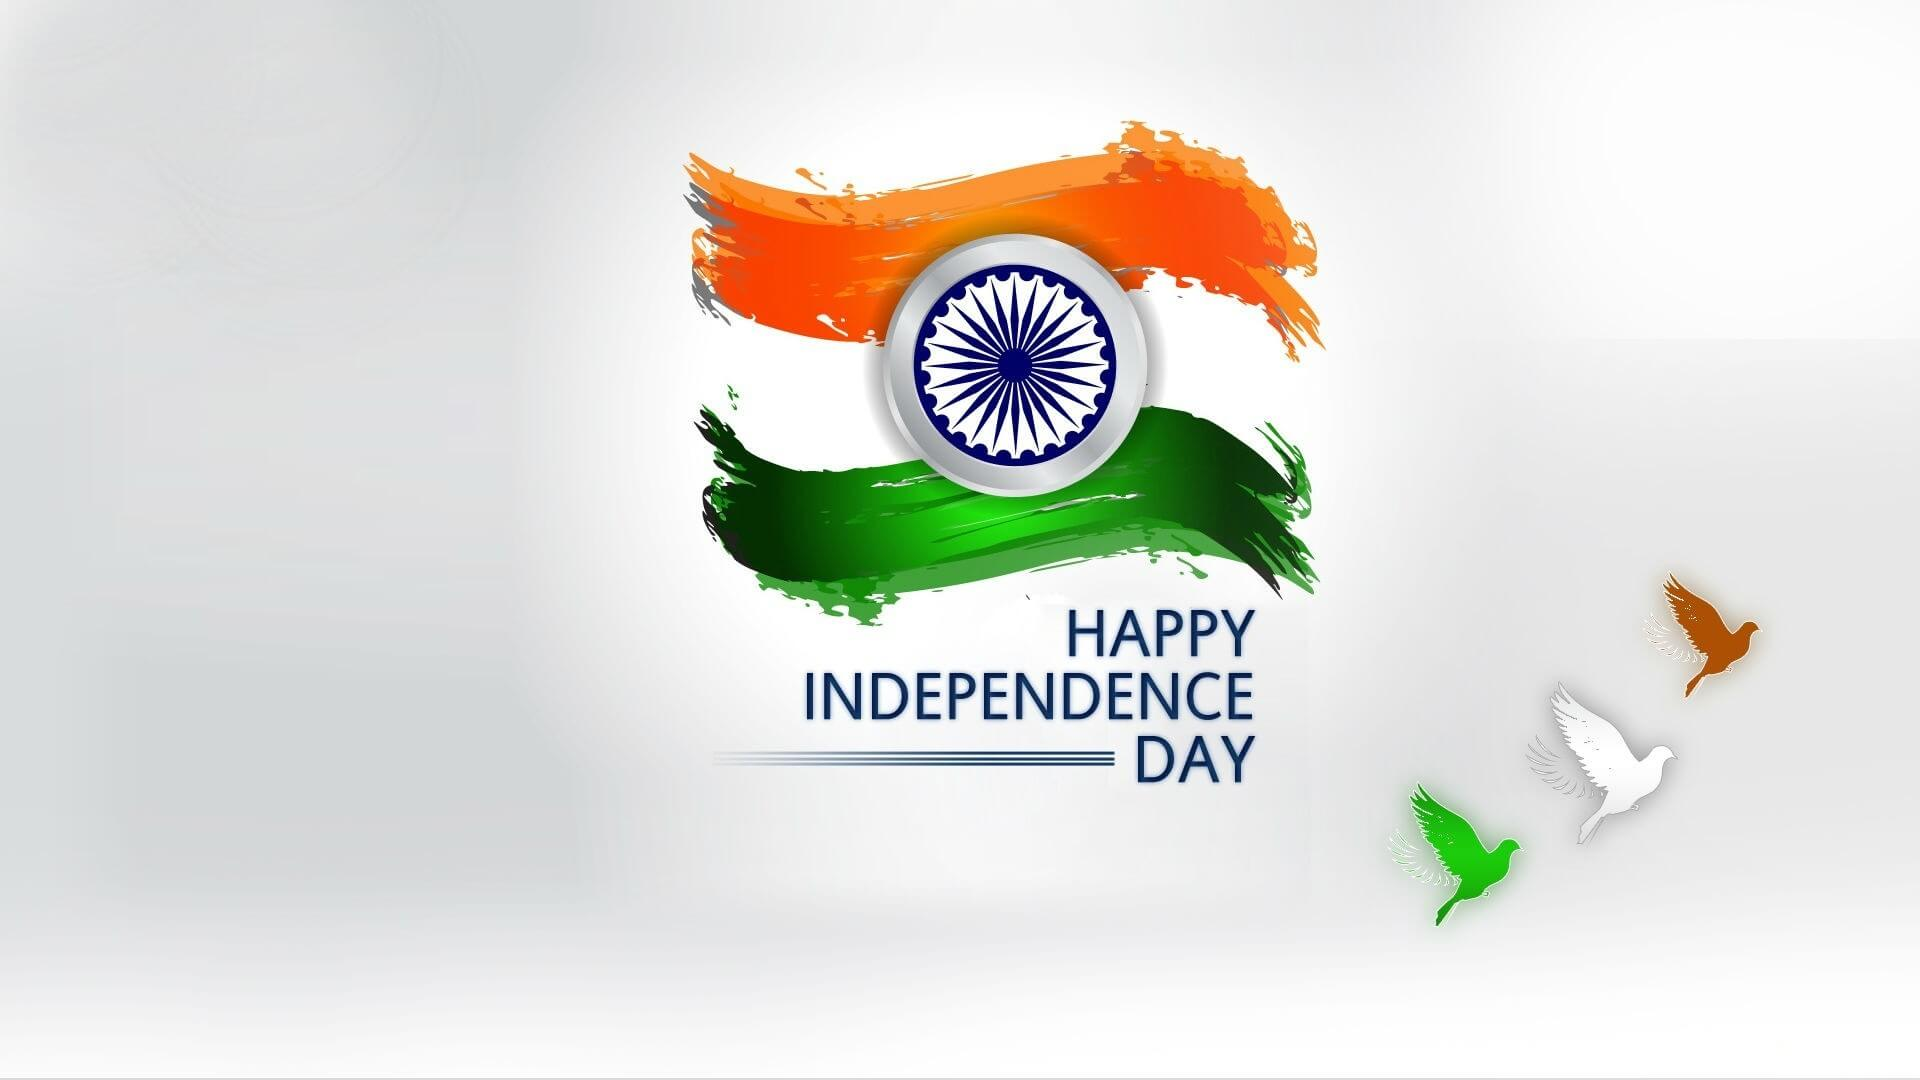 happy india independence day august 15th 1947